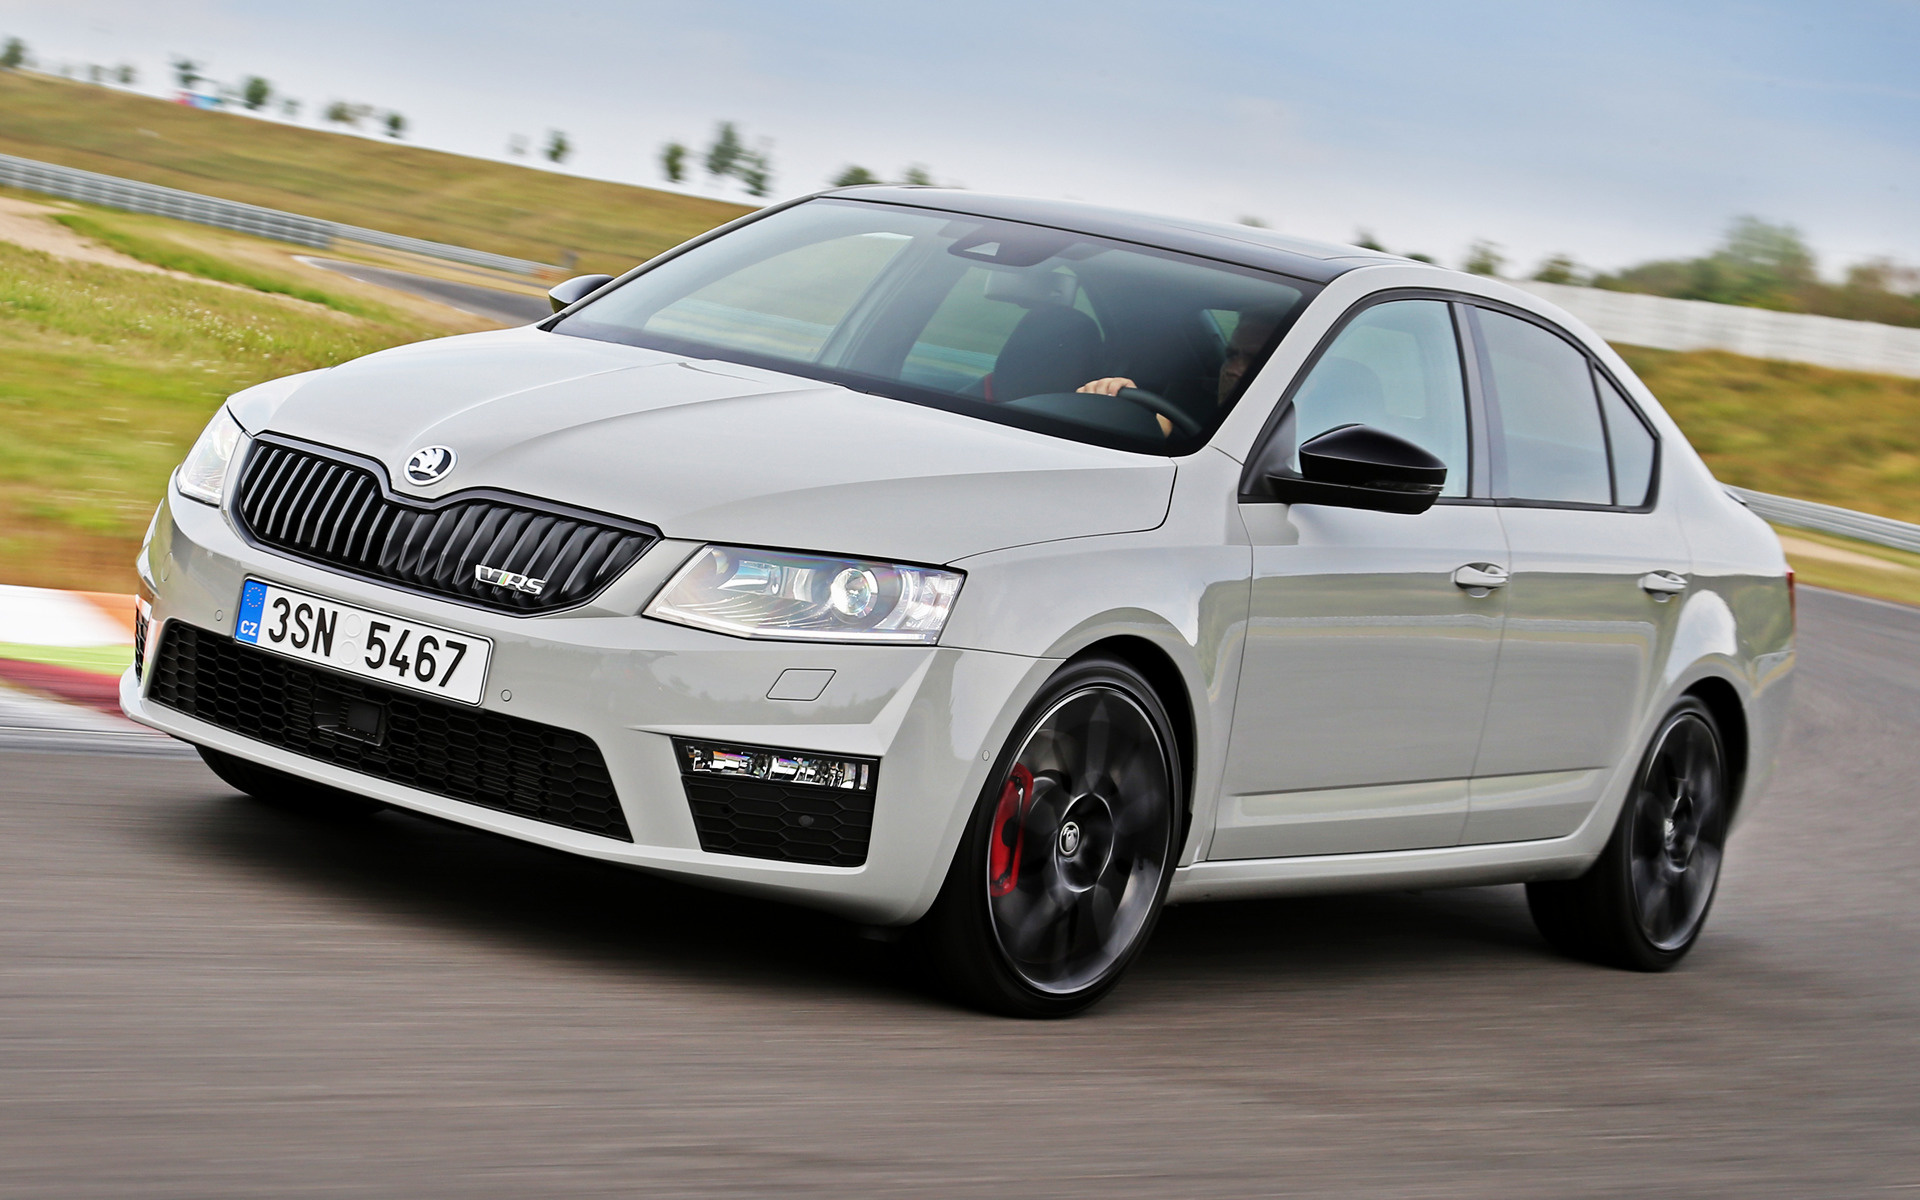 2015 skoda octavia rs 230 wallpapers and hd images car. Black Bedroom Furniture Sets. Home Design Ideas